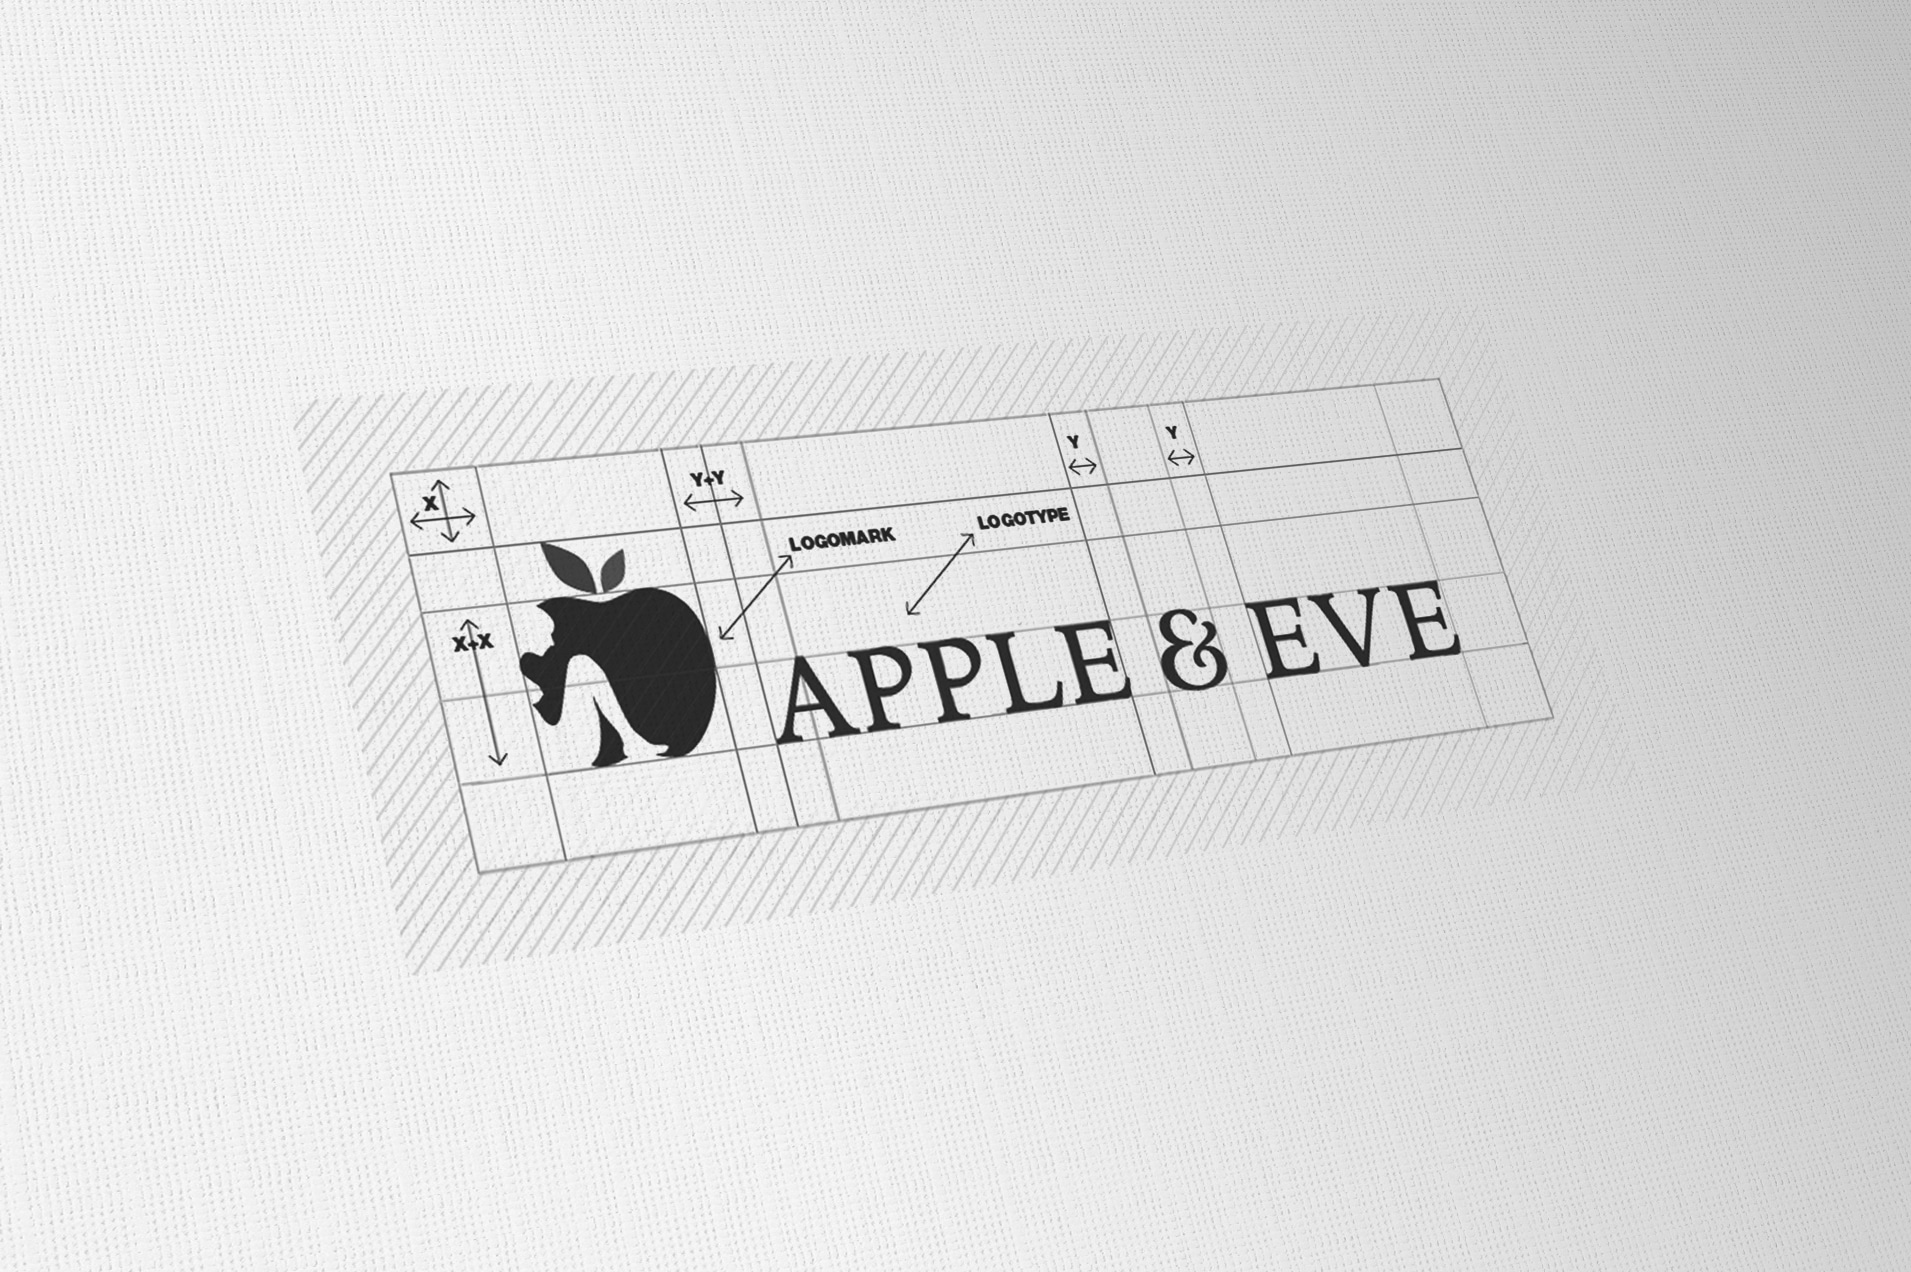 Apple & Eve Logo Designed By The Logo Smith